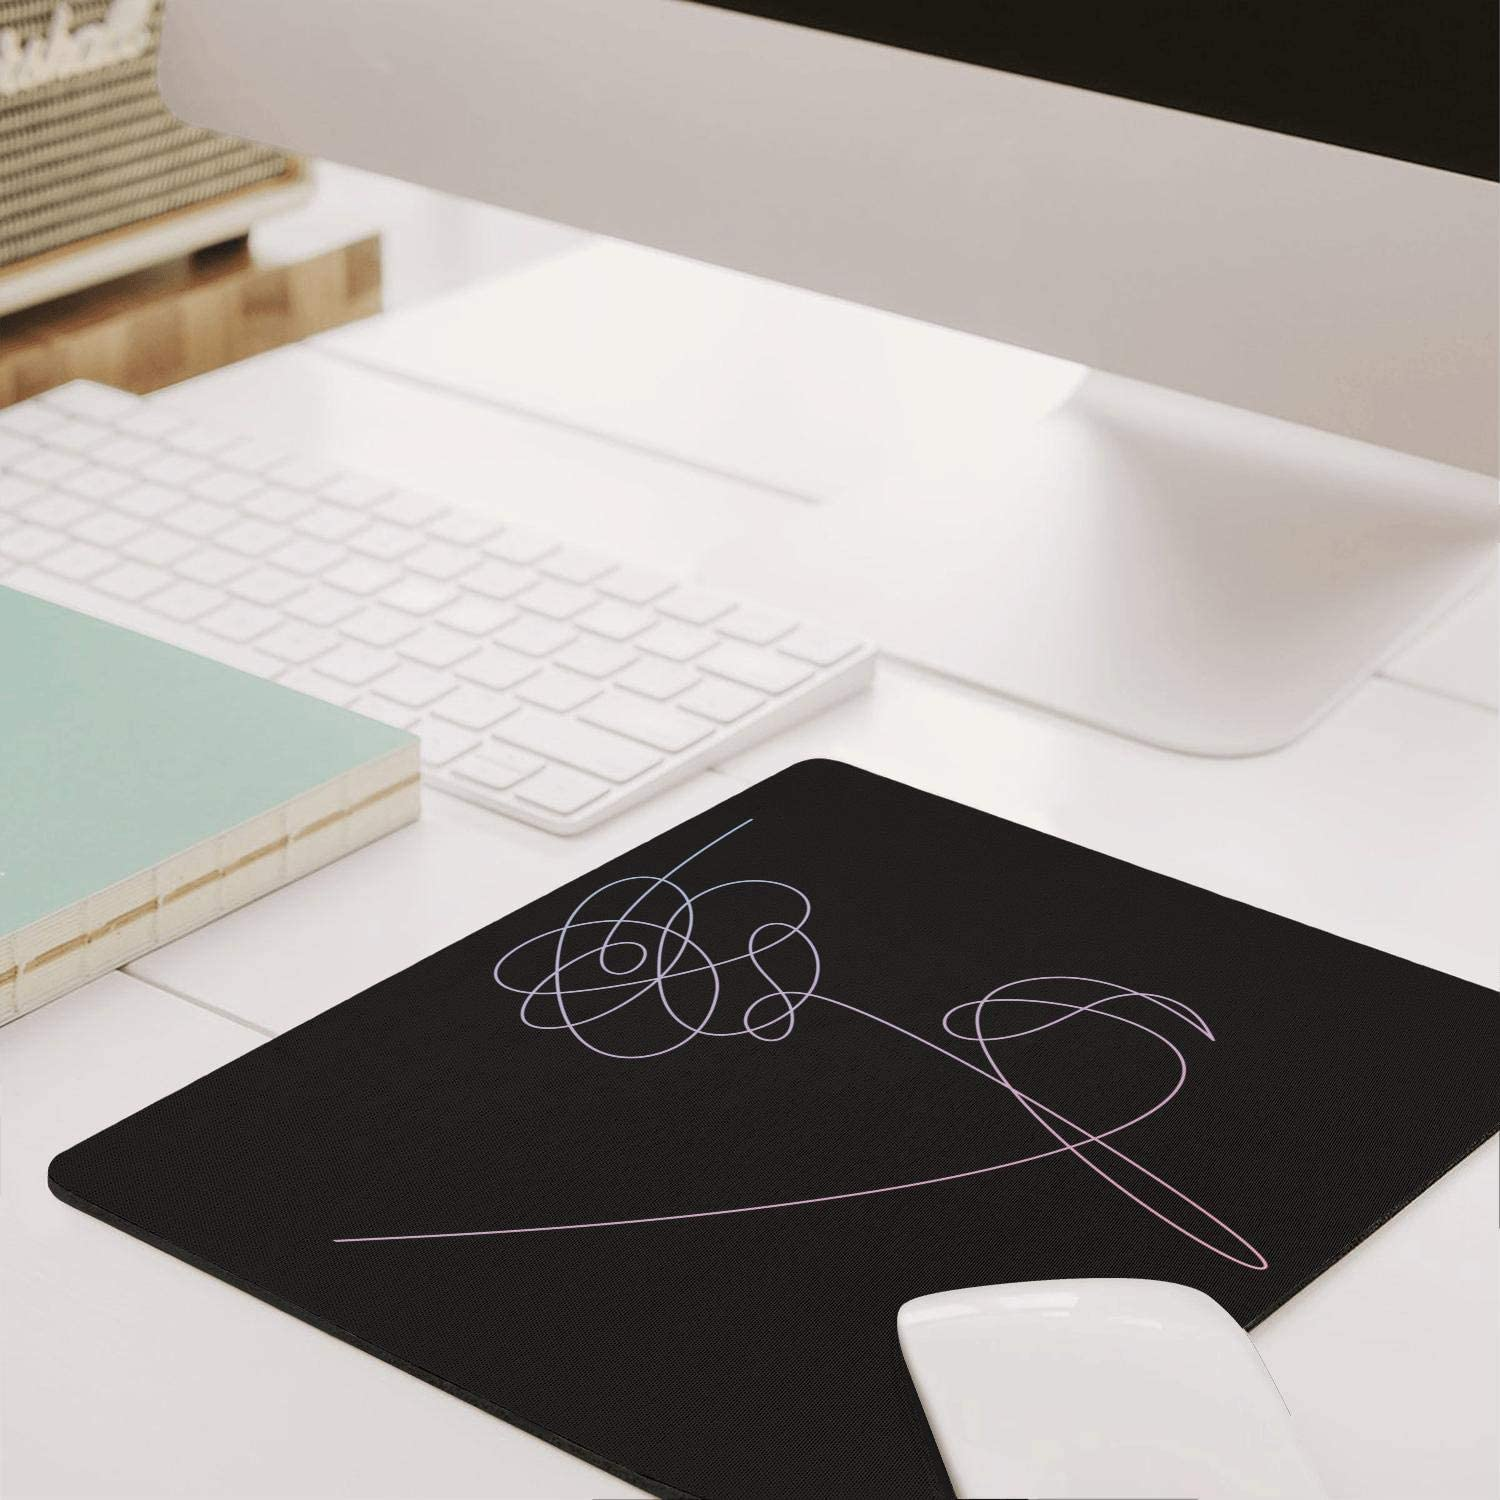 Laptop Mouse pad BTS-Love-Yourself-Logo-,Stitched Edges /& Skid Proof Rubber Base,Gaming Mousepads for Computers,Laptop,Office /& Home